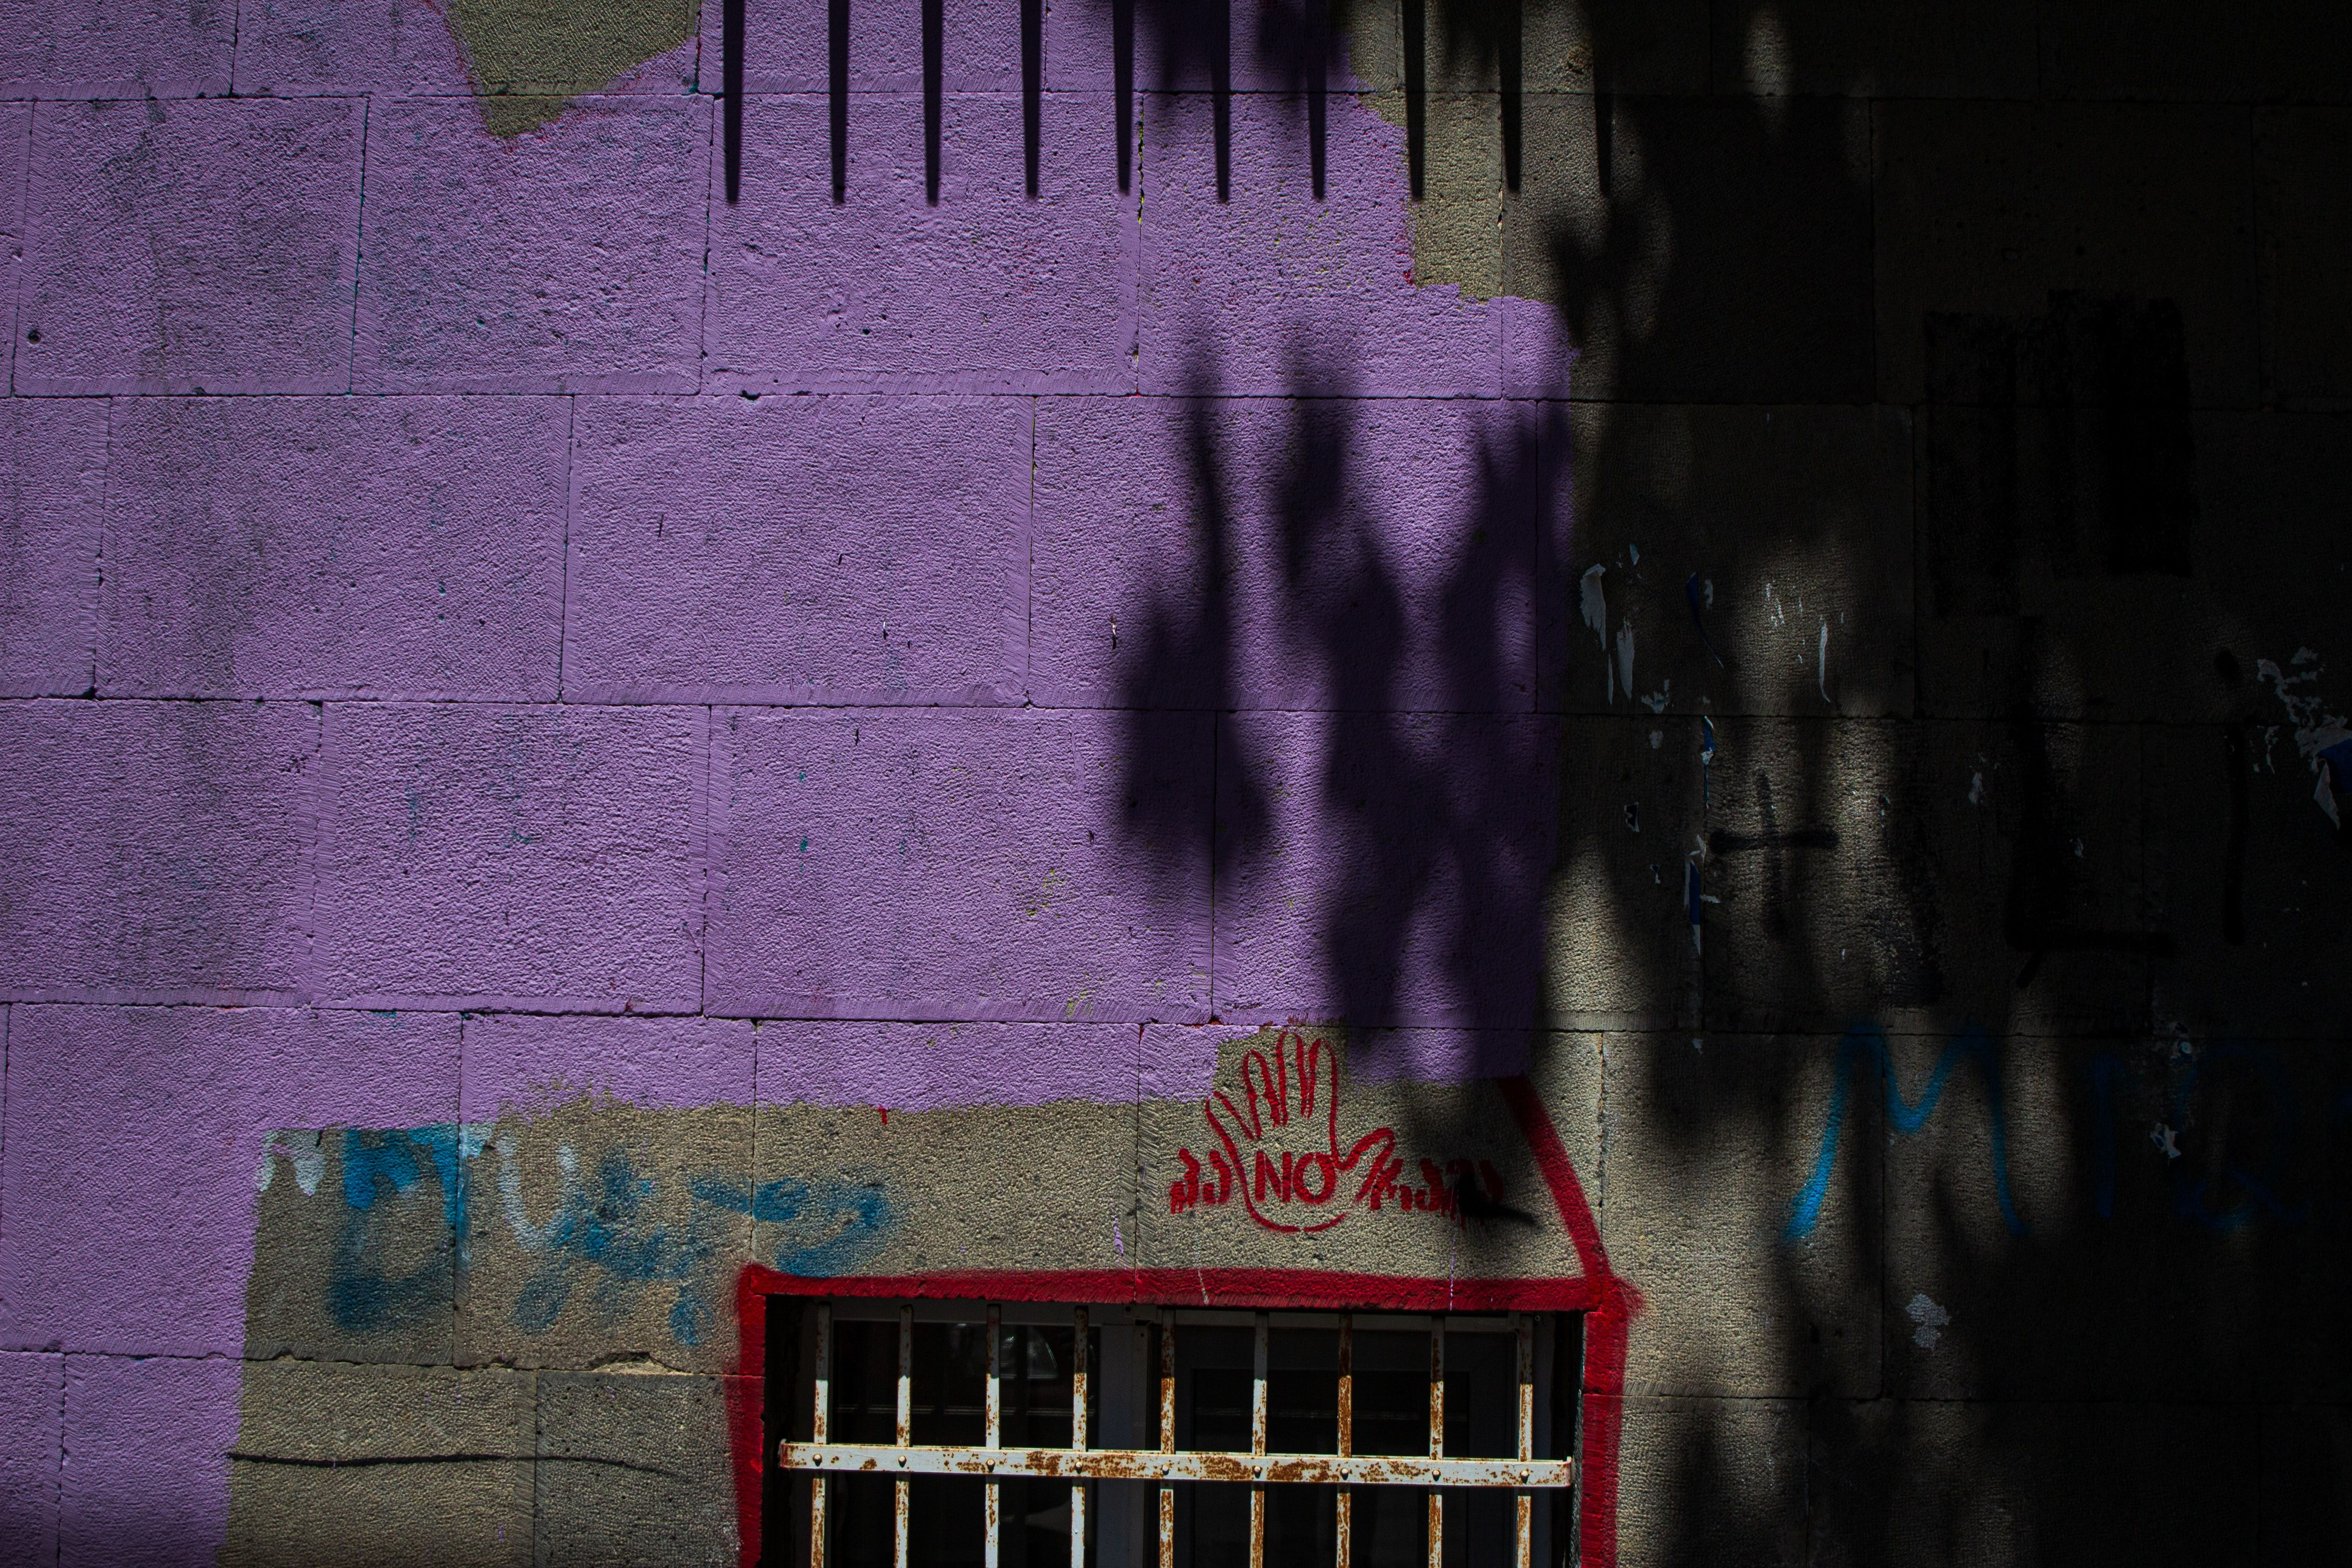 Wall Art Home Decor Grey Cement Grey Cement Wall With Purple Paint Graffiti Floral Shadows Purple Paint Graffiti Painting